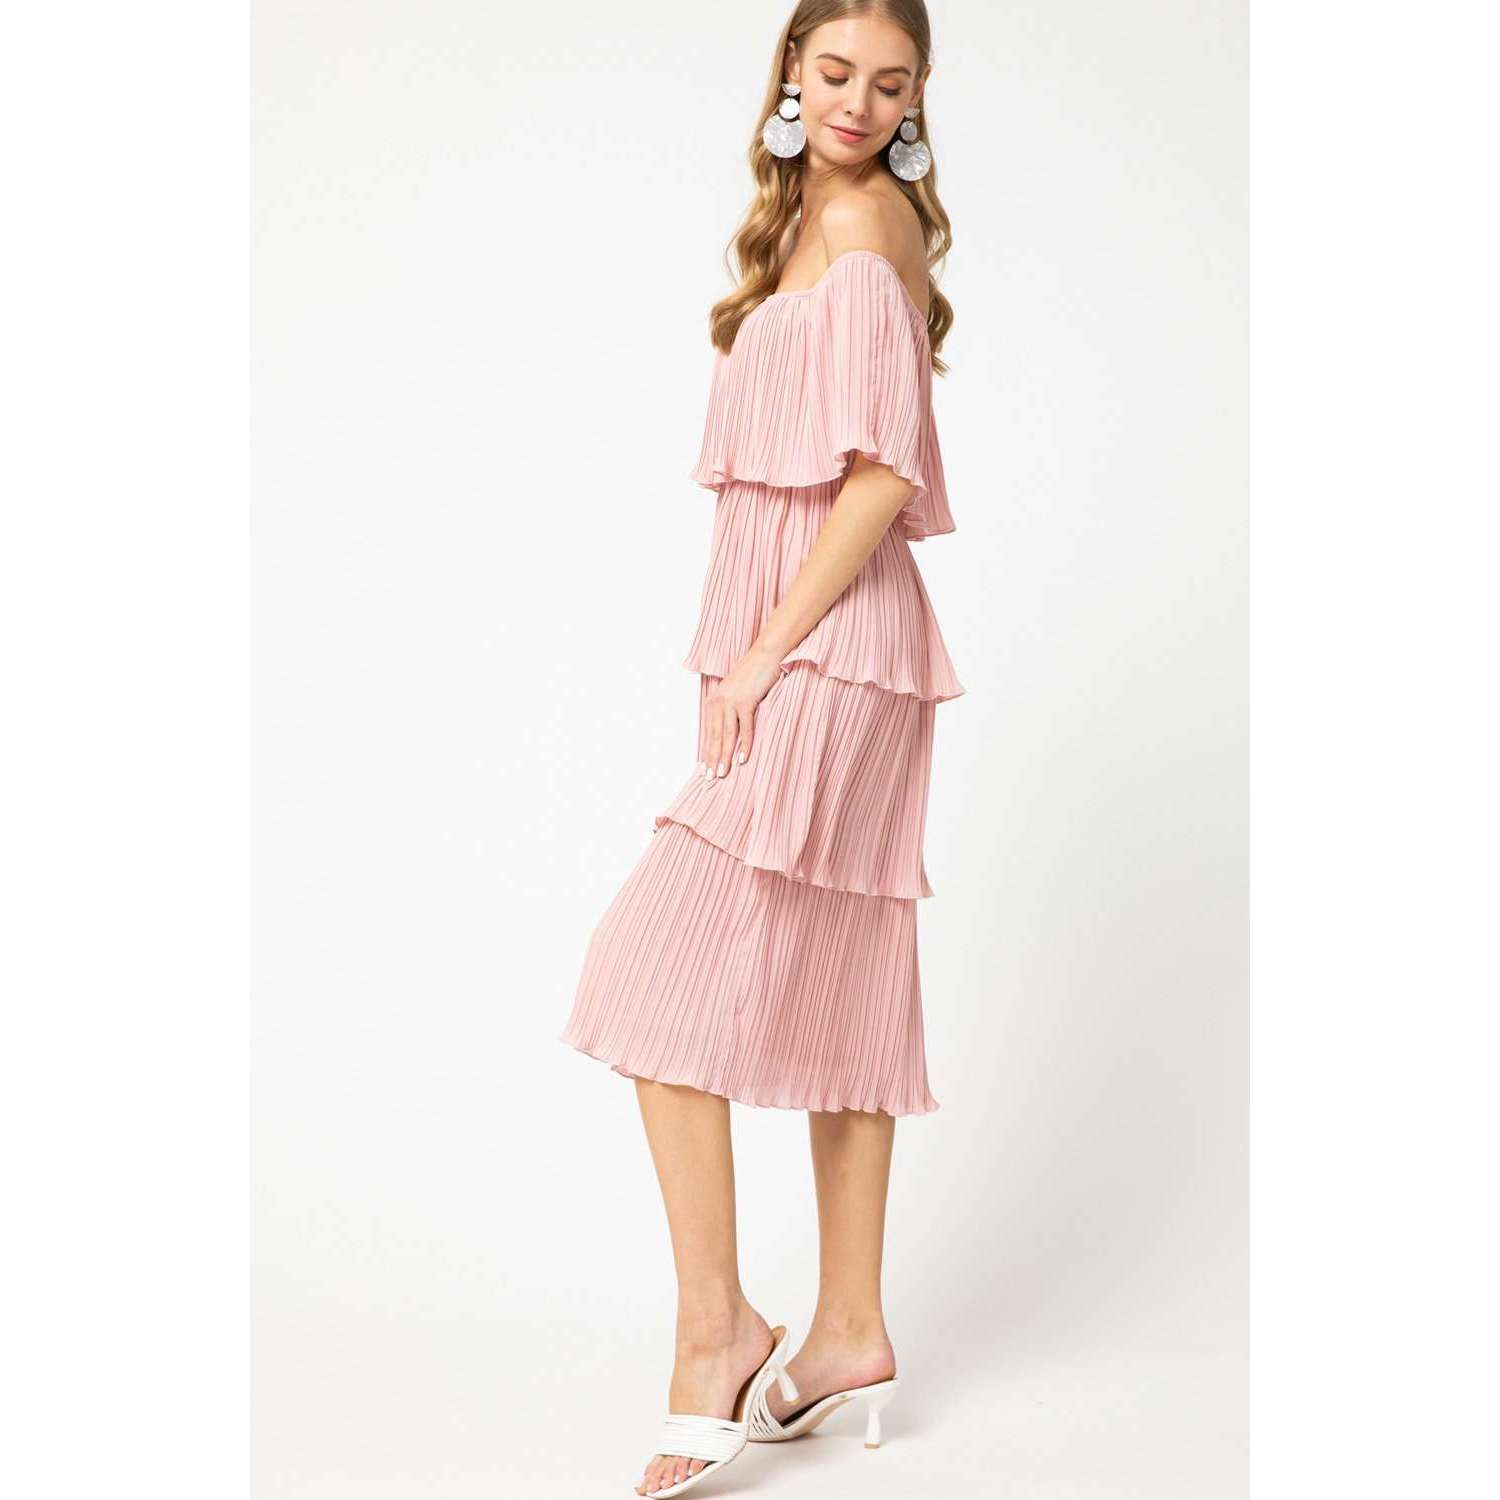 8.28 Boutique:8.28 Boutique,Entro Tiered Dress in Blush Pink,Dress